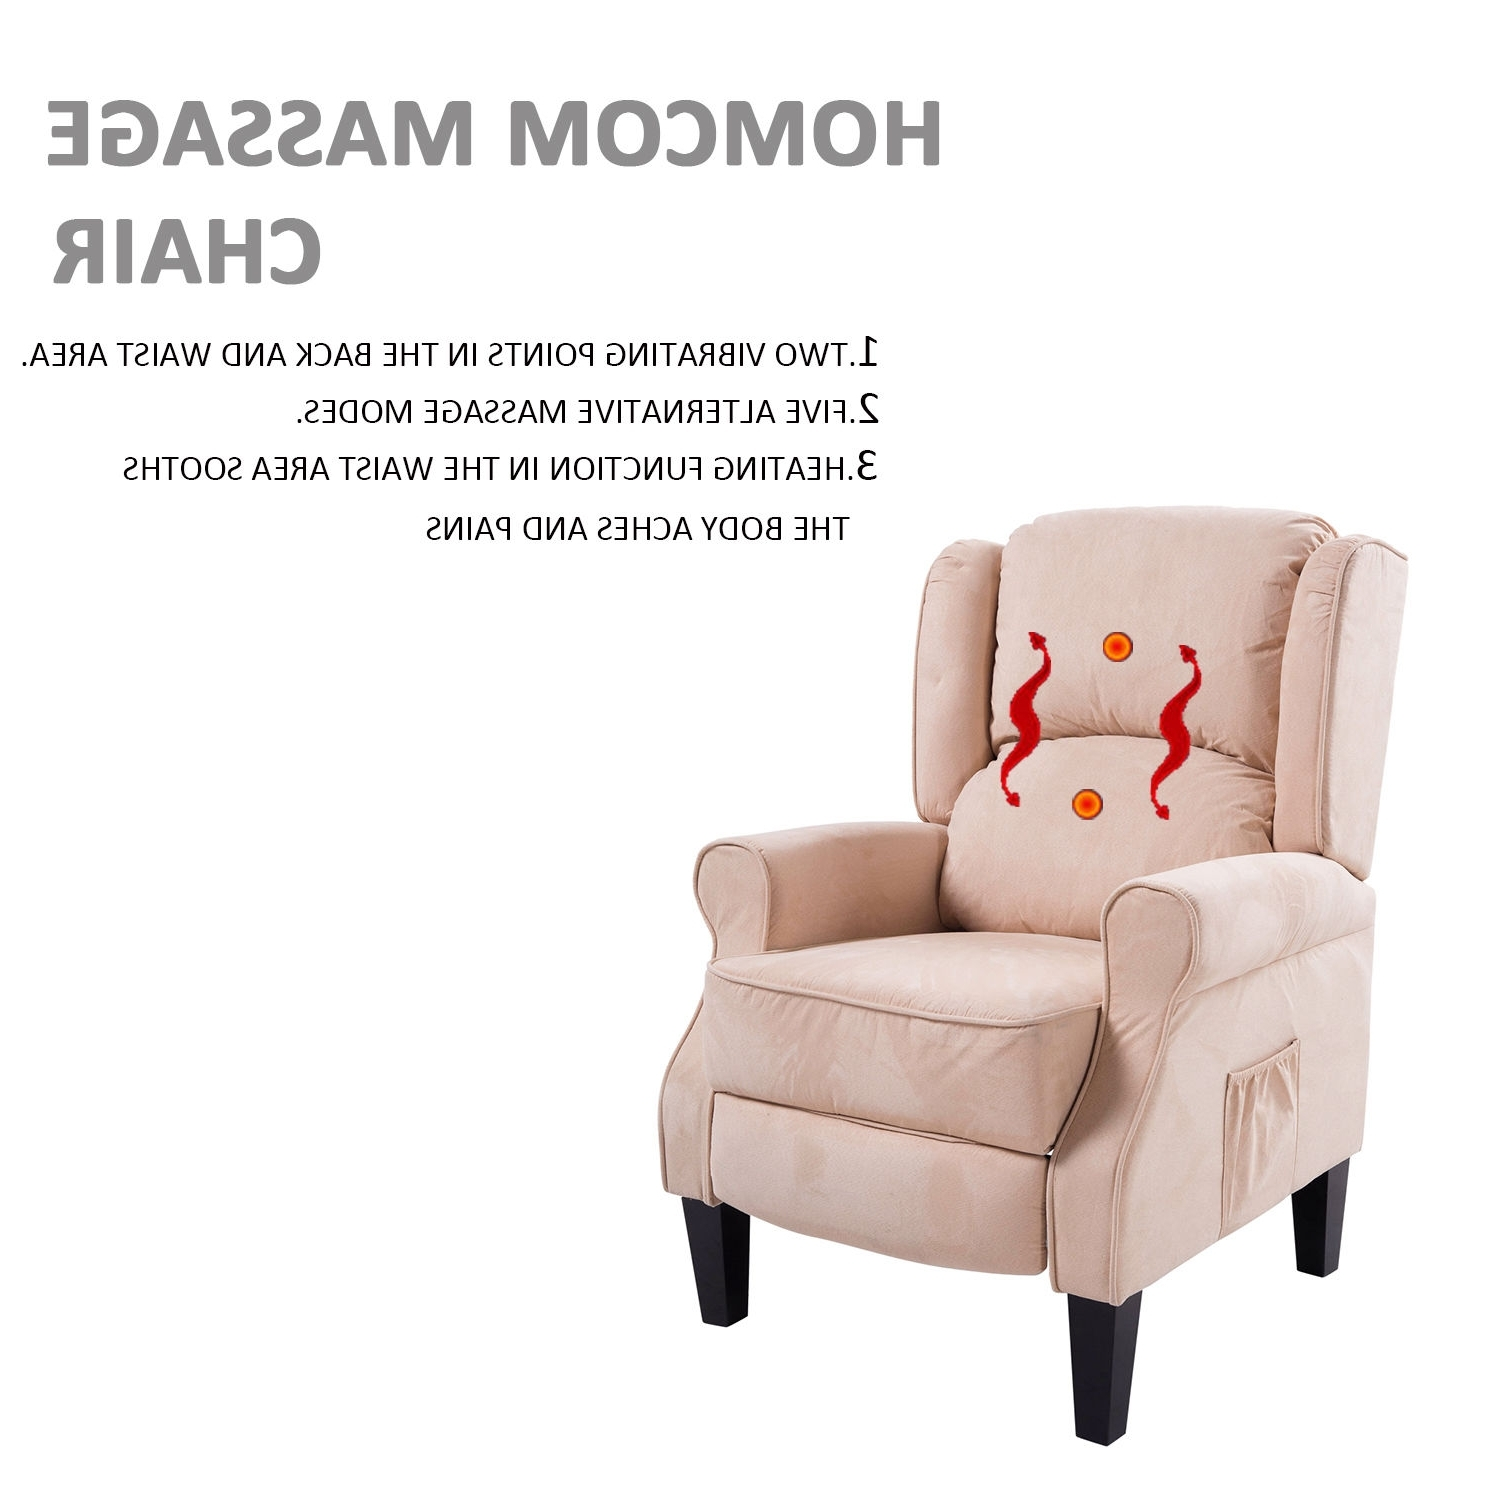 Newest Ergonomic Sofas And Chairs Regarding Ergonomic Massage Recliner Sofa Chair Heated Lounge Suede W (View 12 of 15)